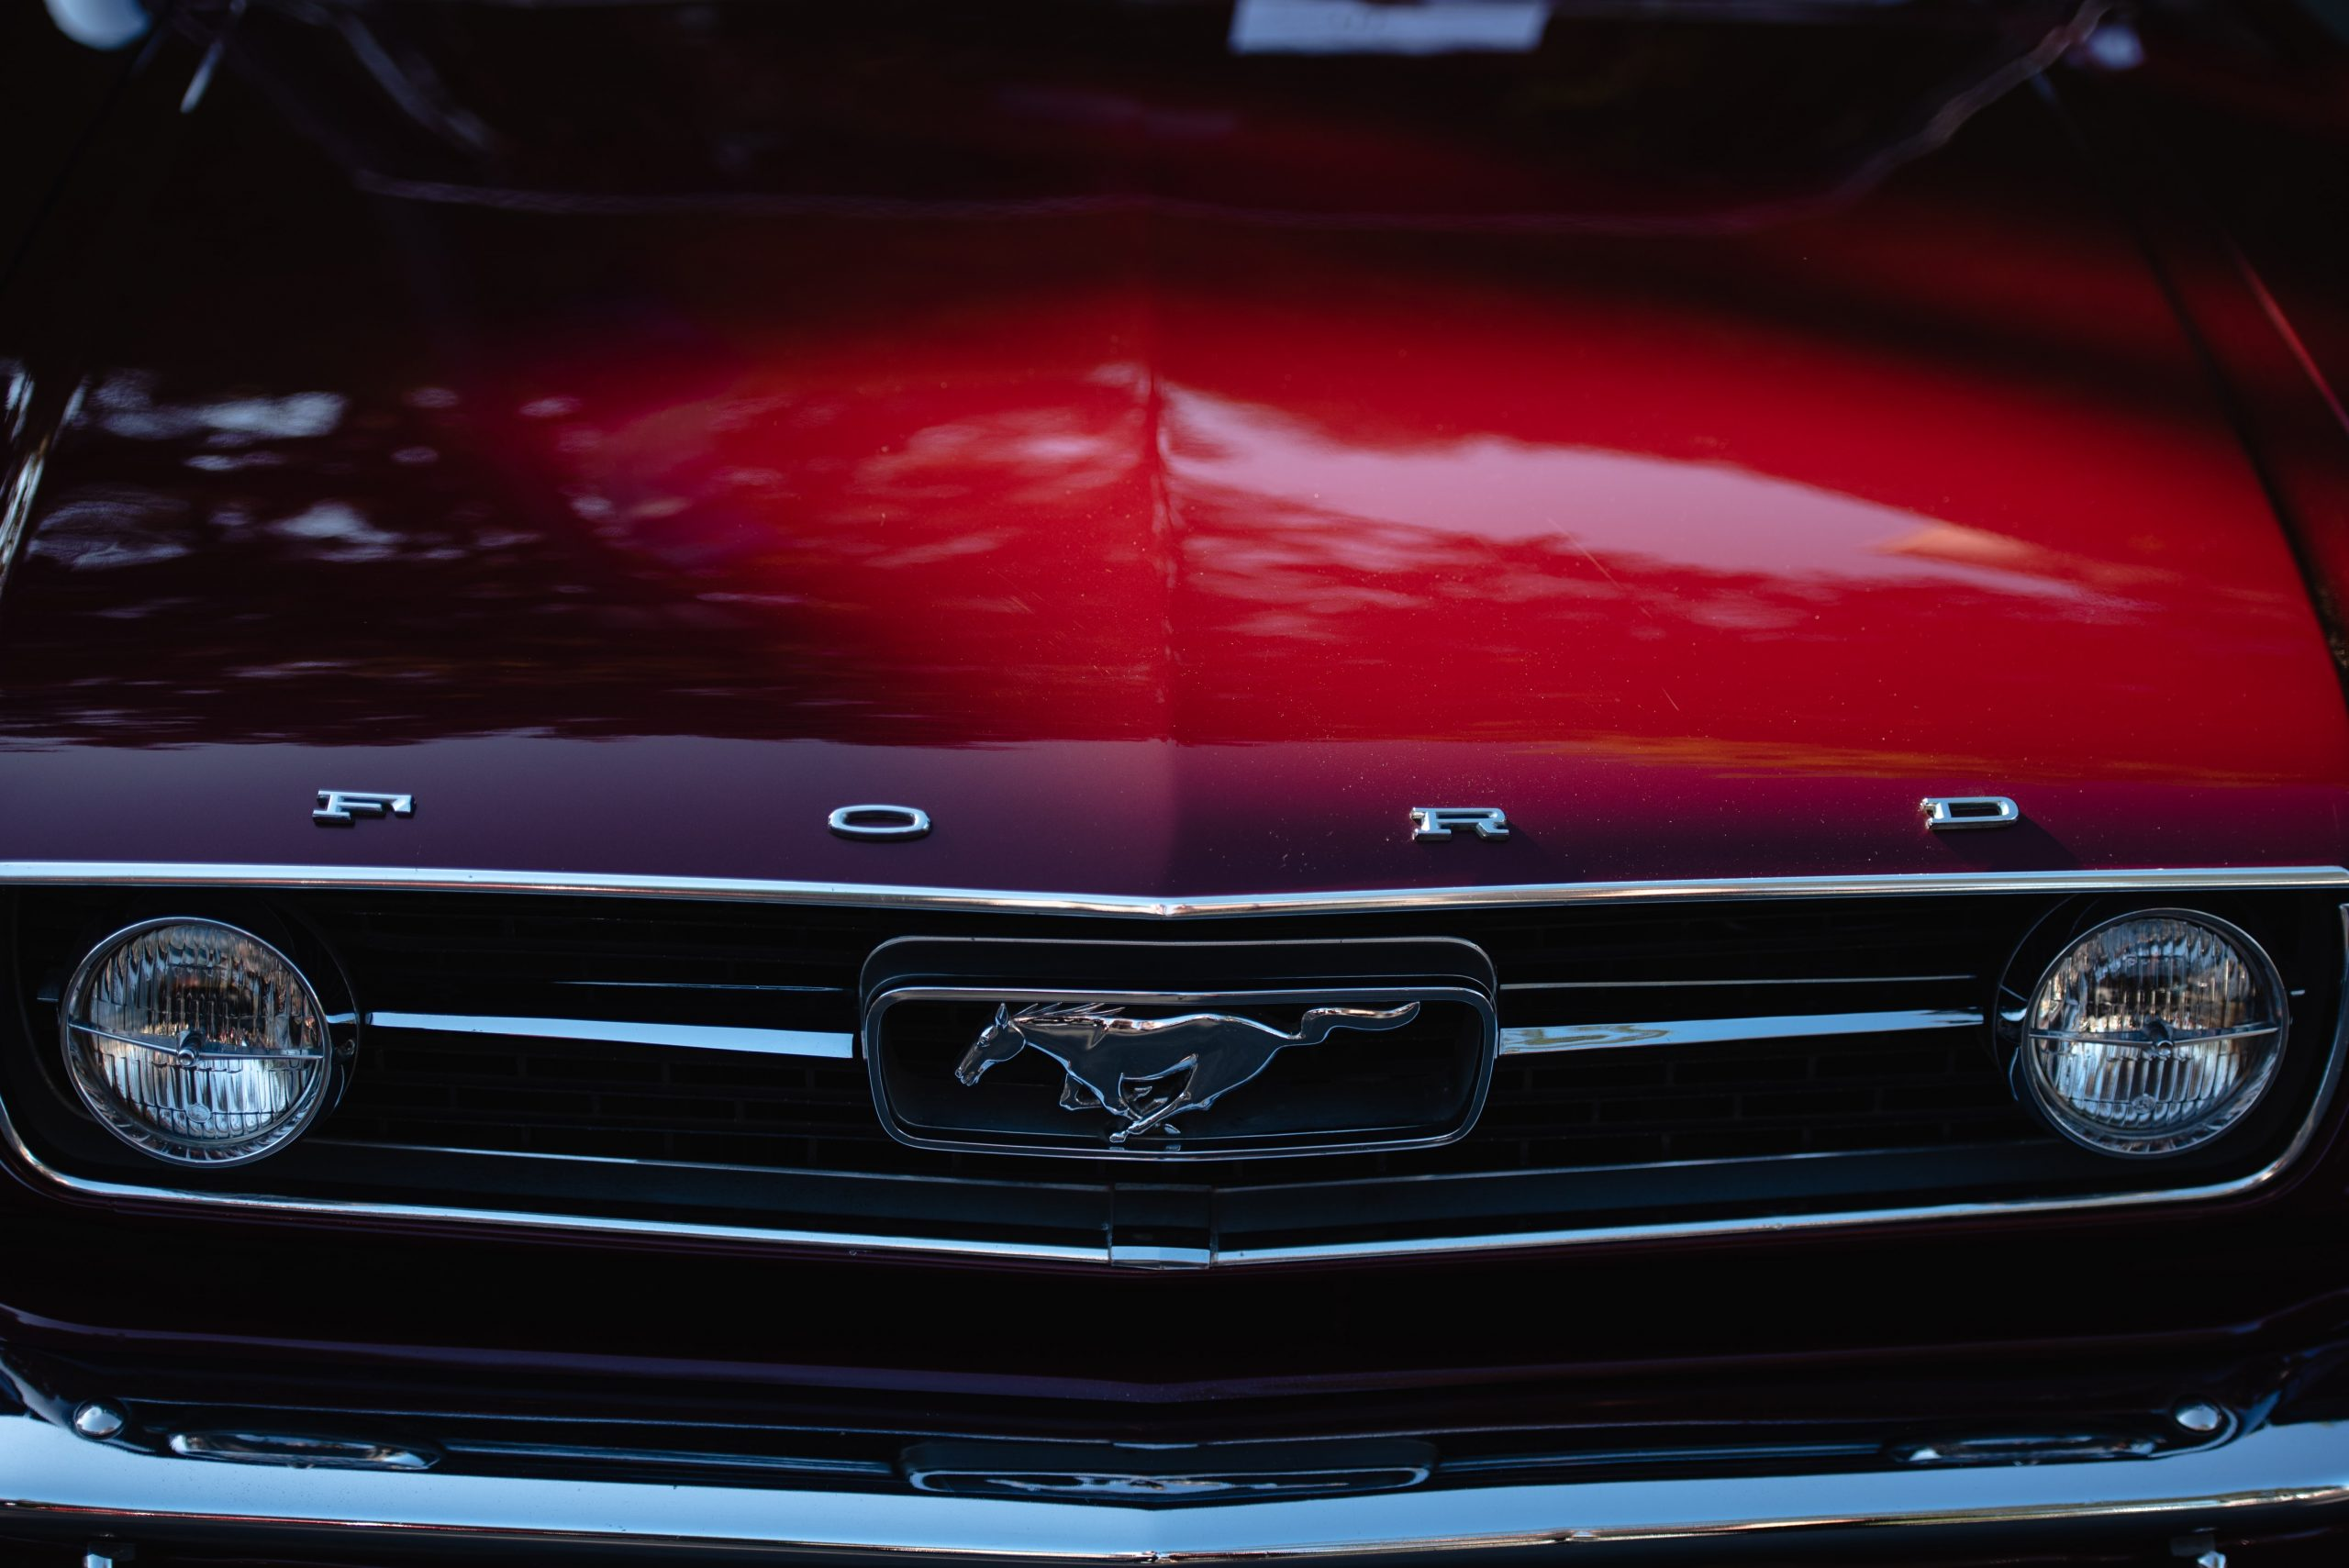 Ford Has Big Plans for Their Future